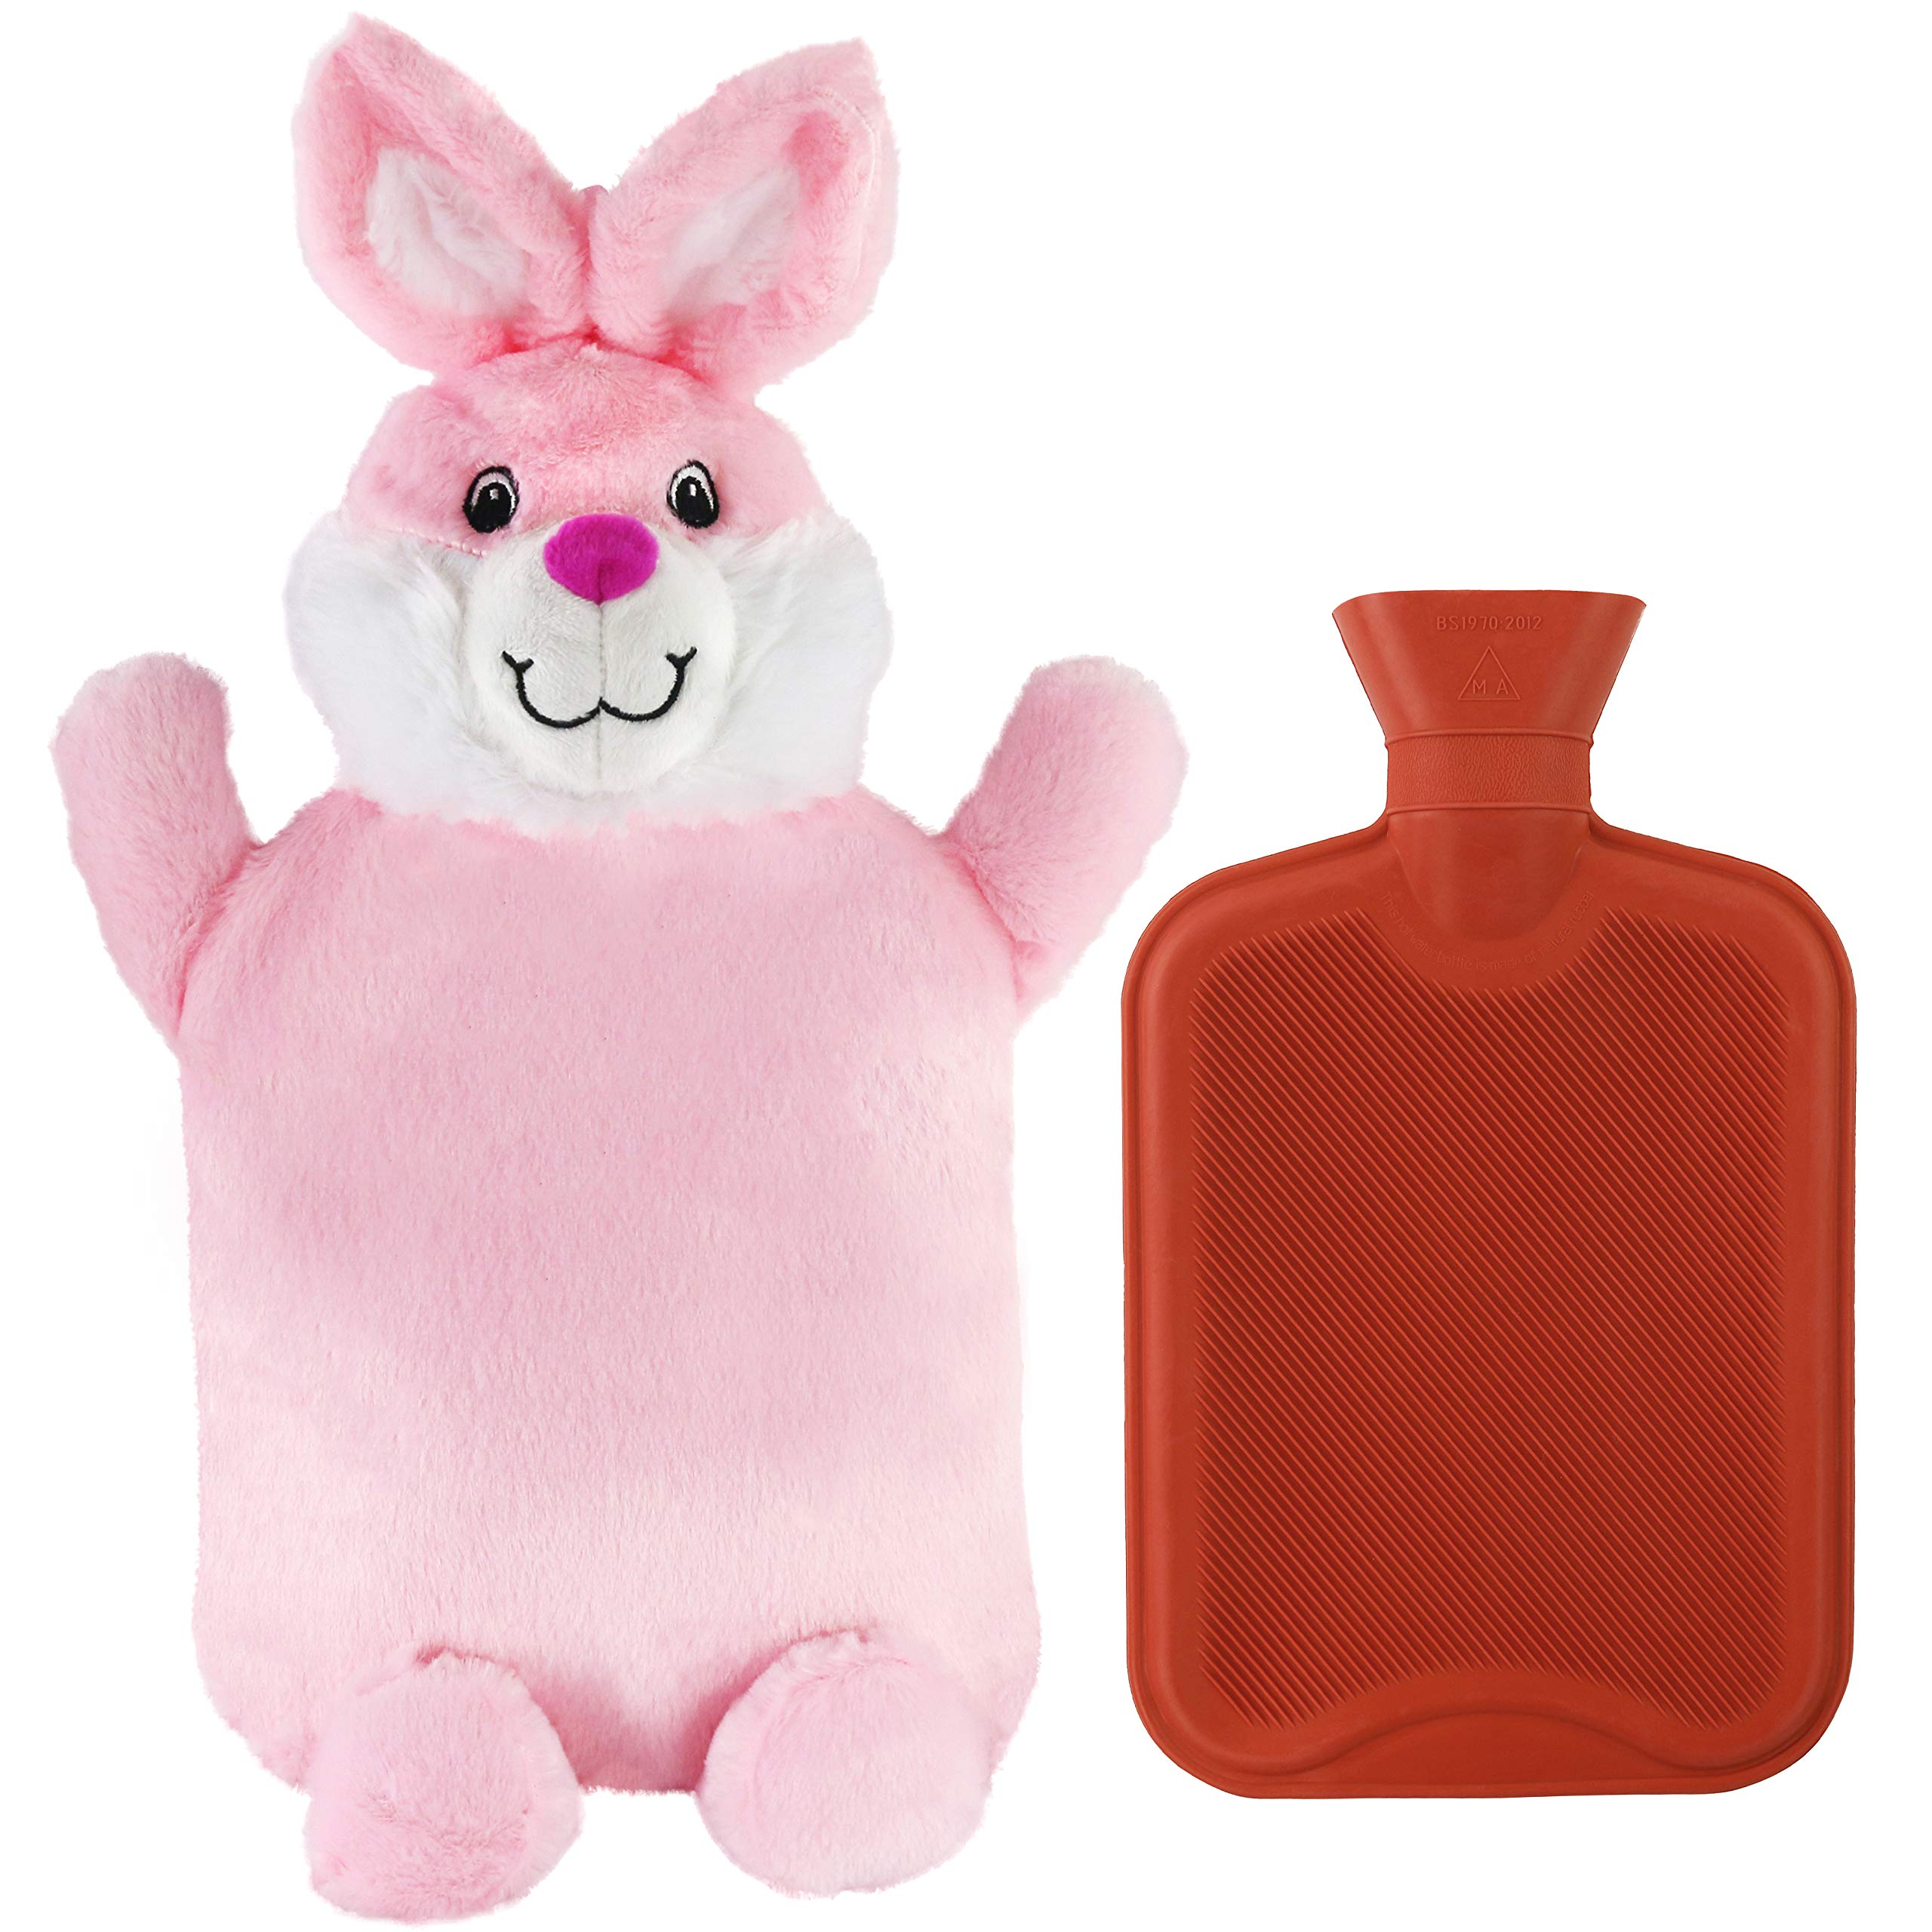 Athoinsu Bunny Rubber 2L Hot Water Bottle with Cute Pink Plush Animal Cover for Girls Women Children(Rabbit) by Athoinsu